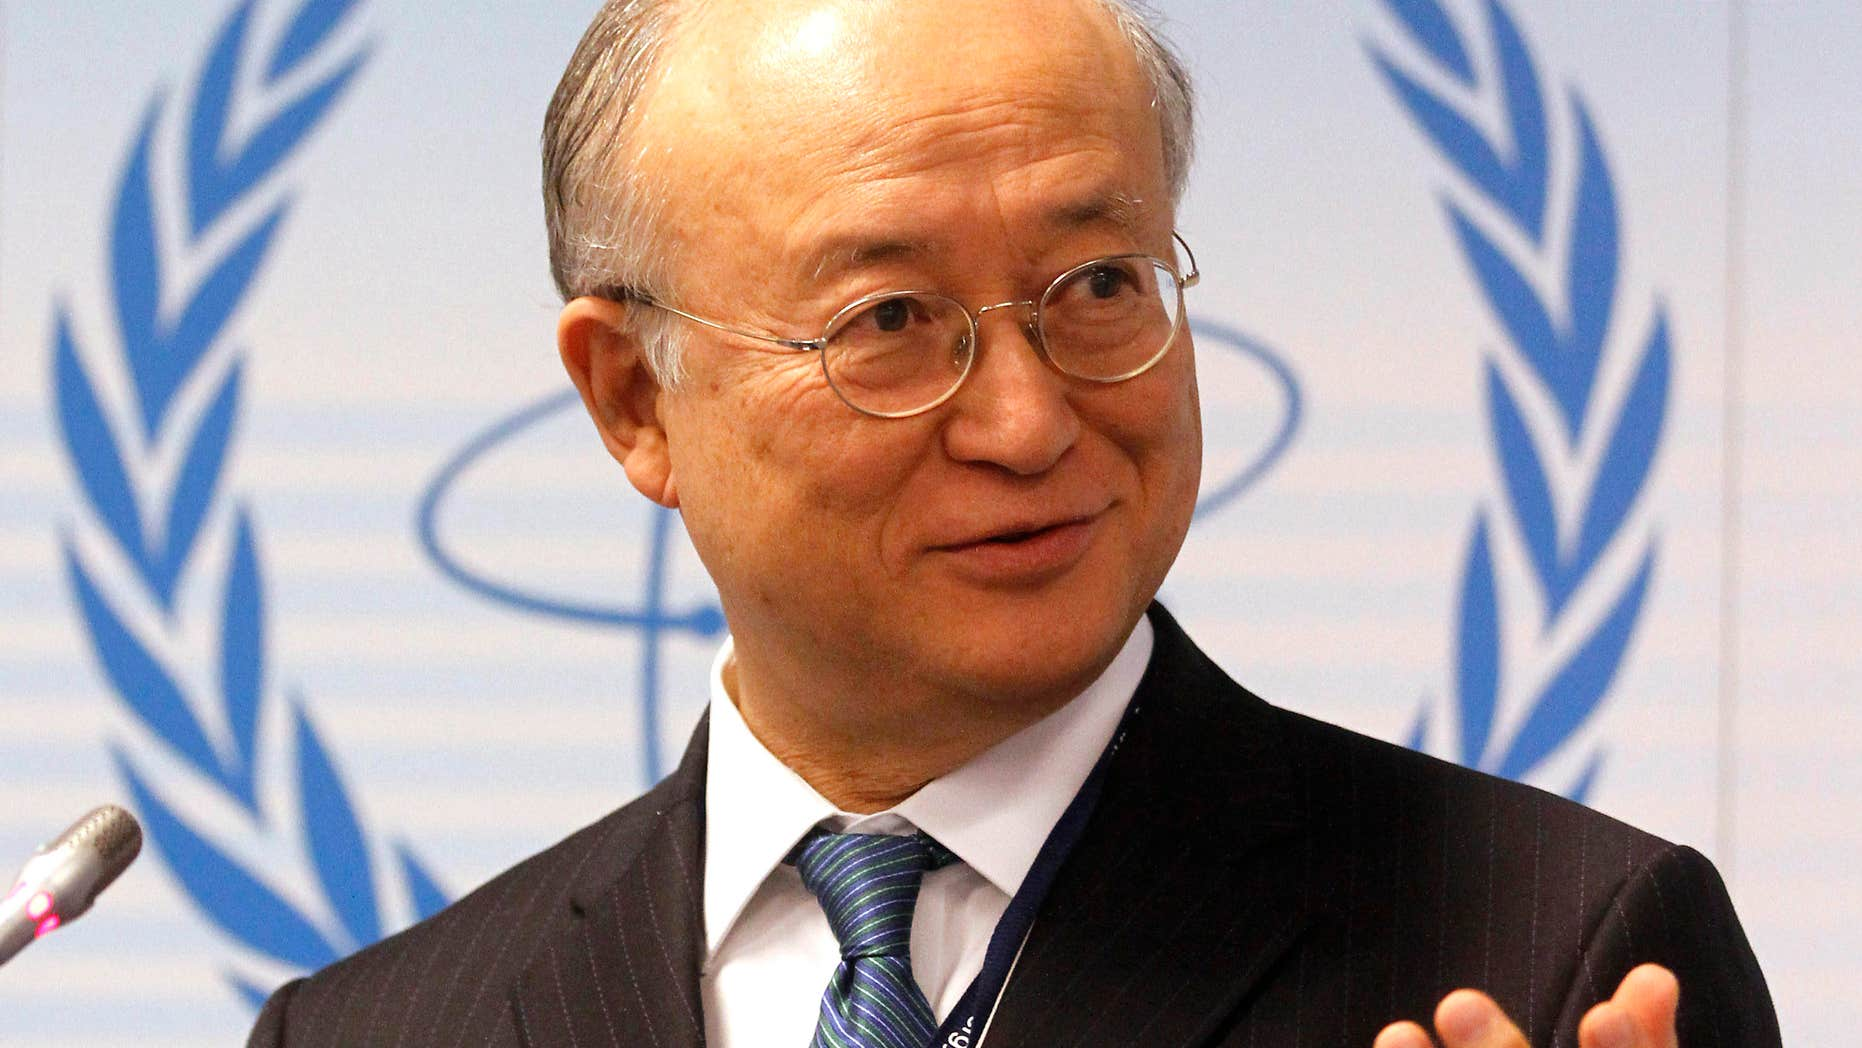 File-This April 4, 2011, file photo shows Director General of the International Atomic Energy Agency, IAEA, Yukiya Amano from Japan speaking during a news conference of the IAEA's Parties to Nuclear Safety Convention Hold Review at the International Center in Vienna, Austria.